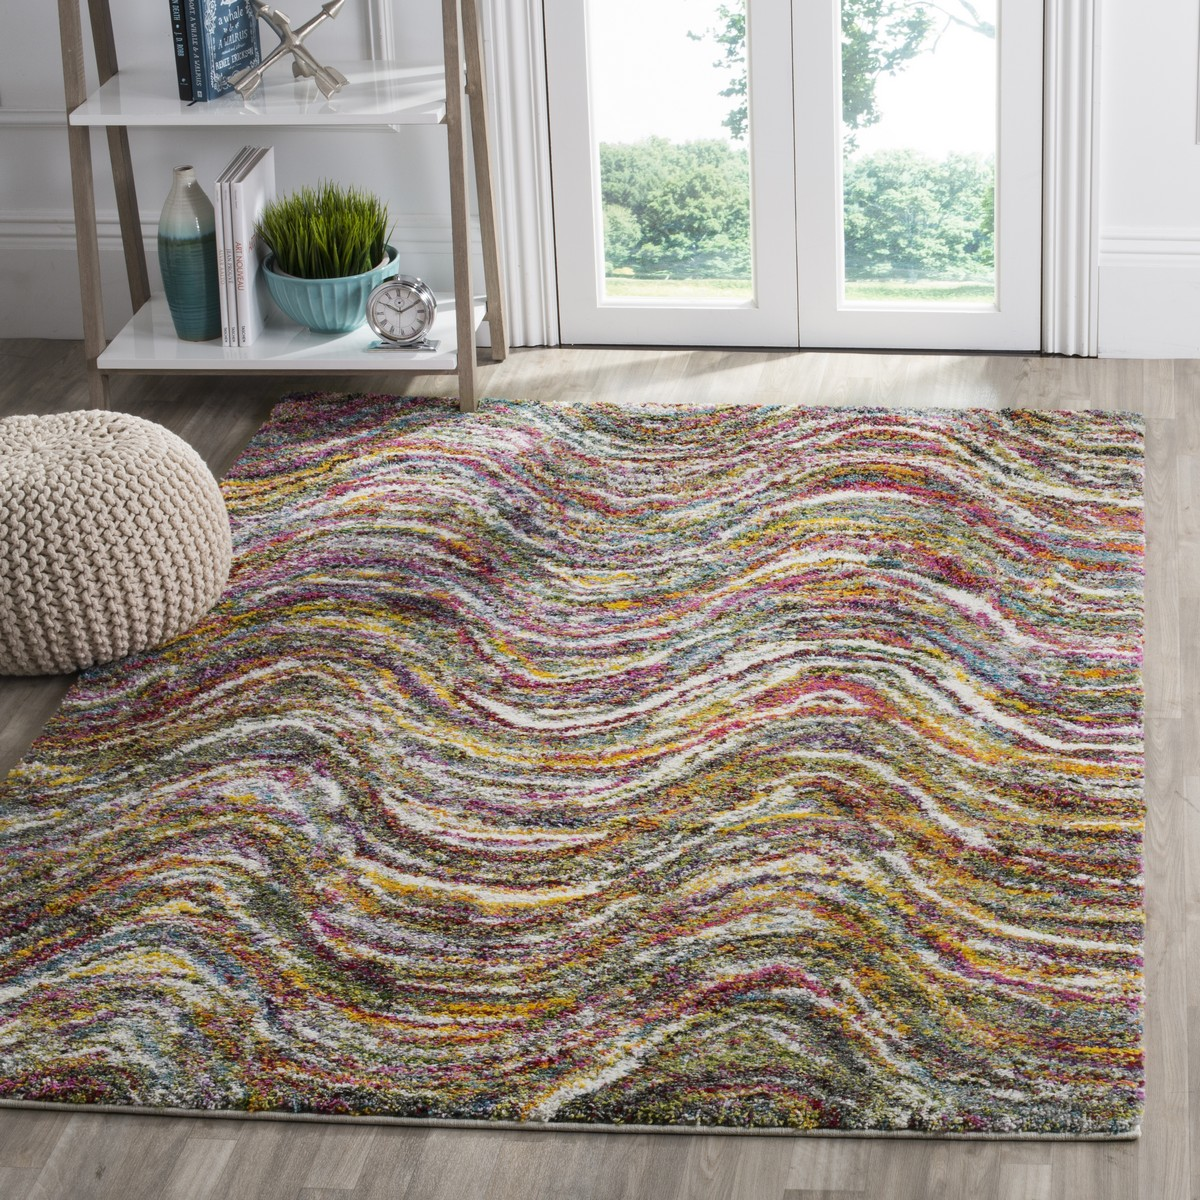 Colorful Shag Rug Fiesta Collection Safavieh Com